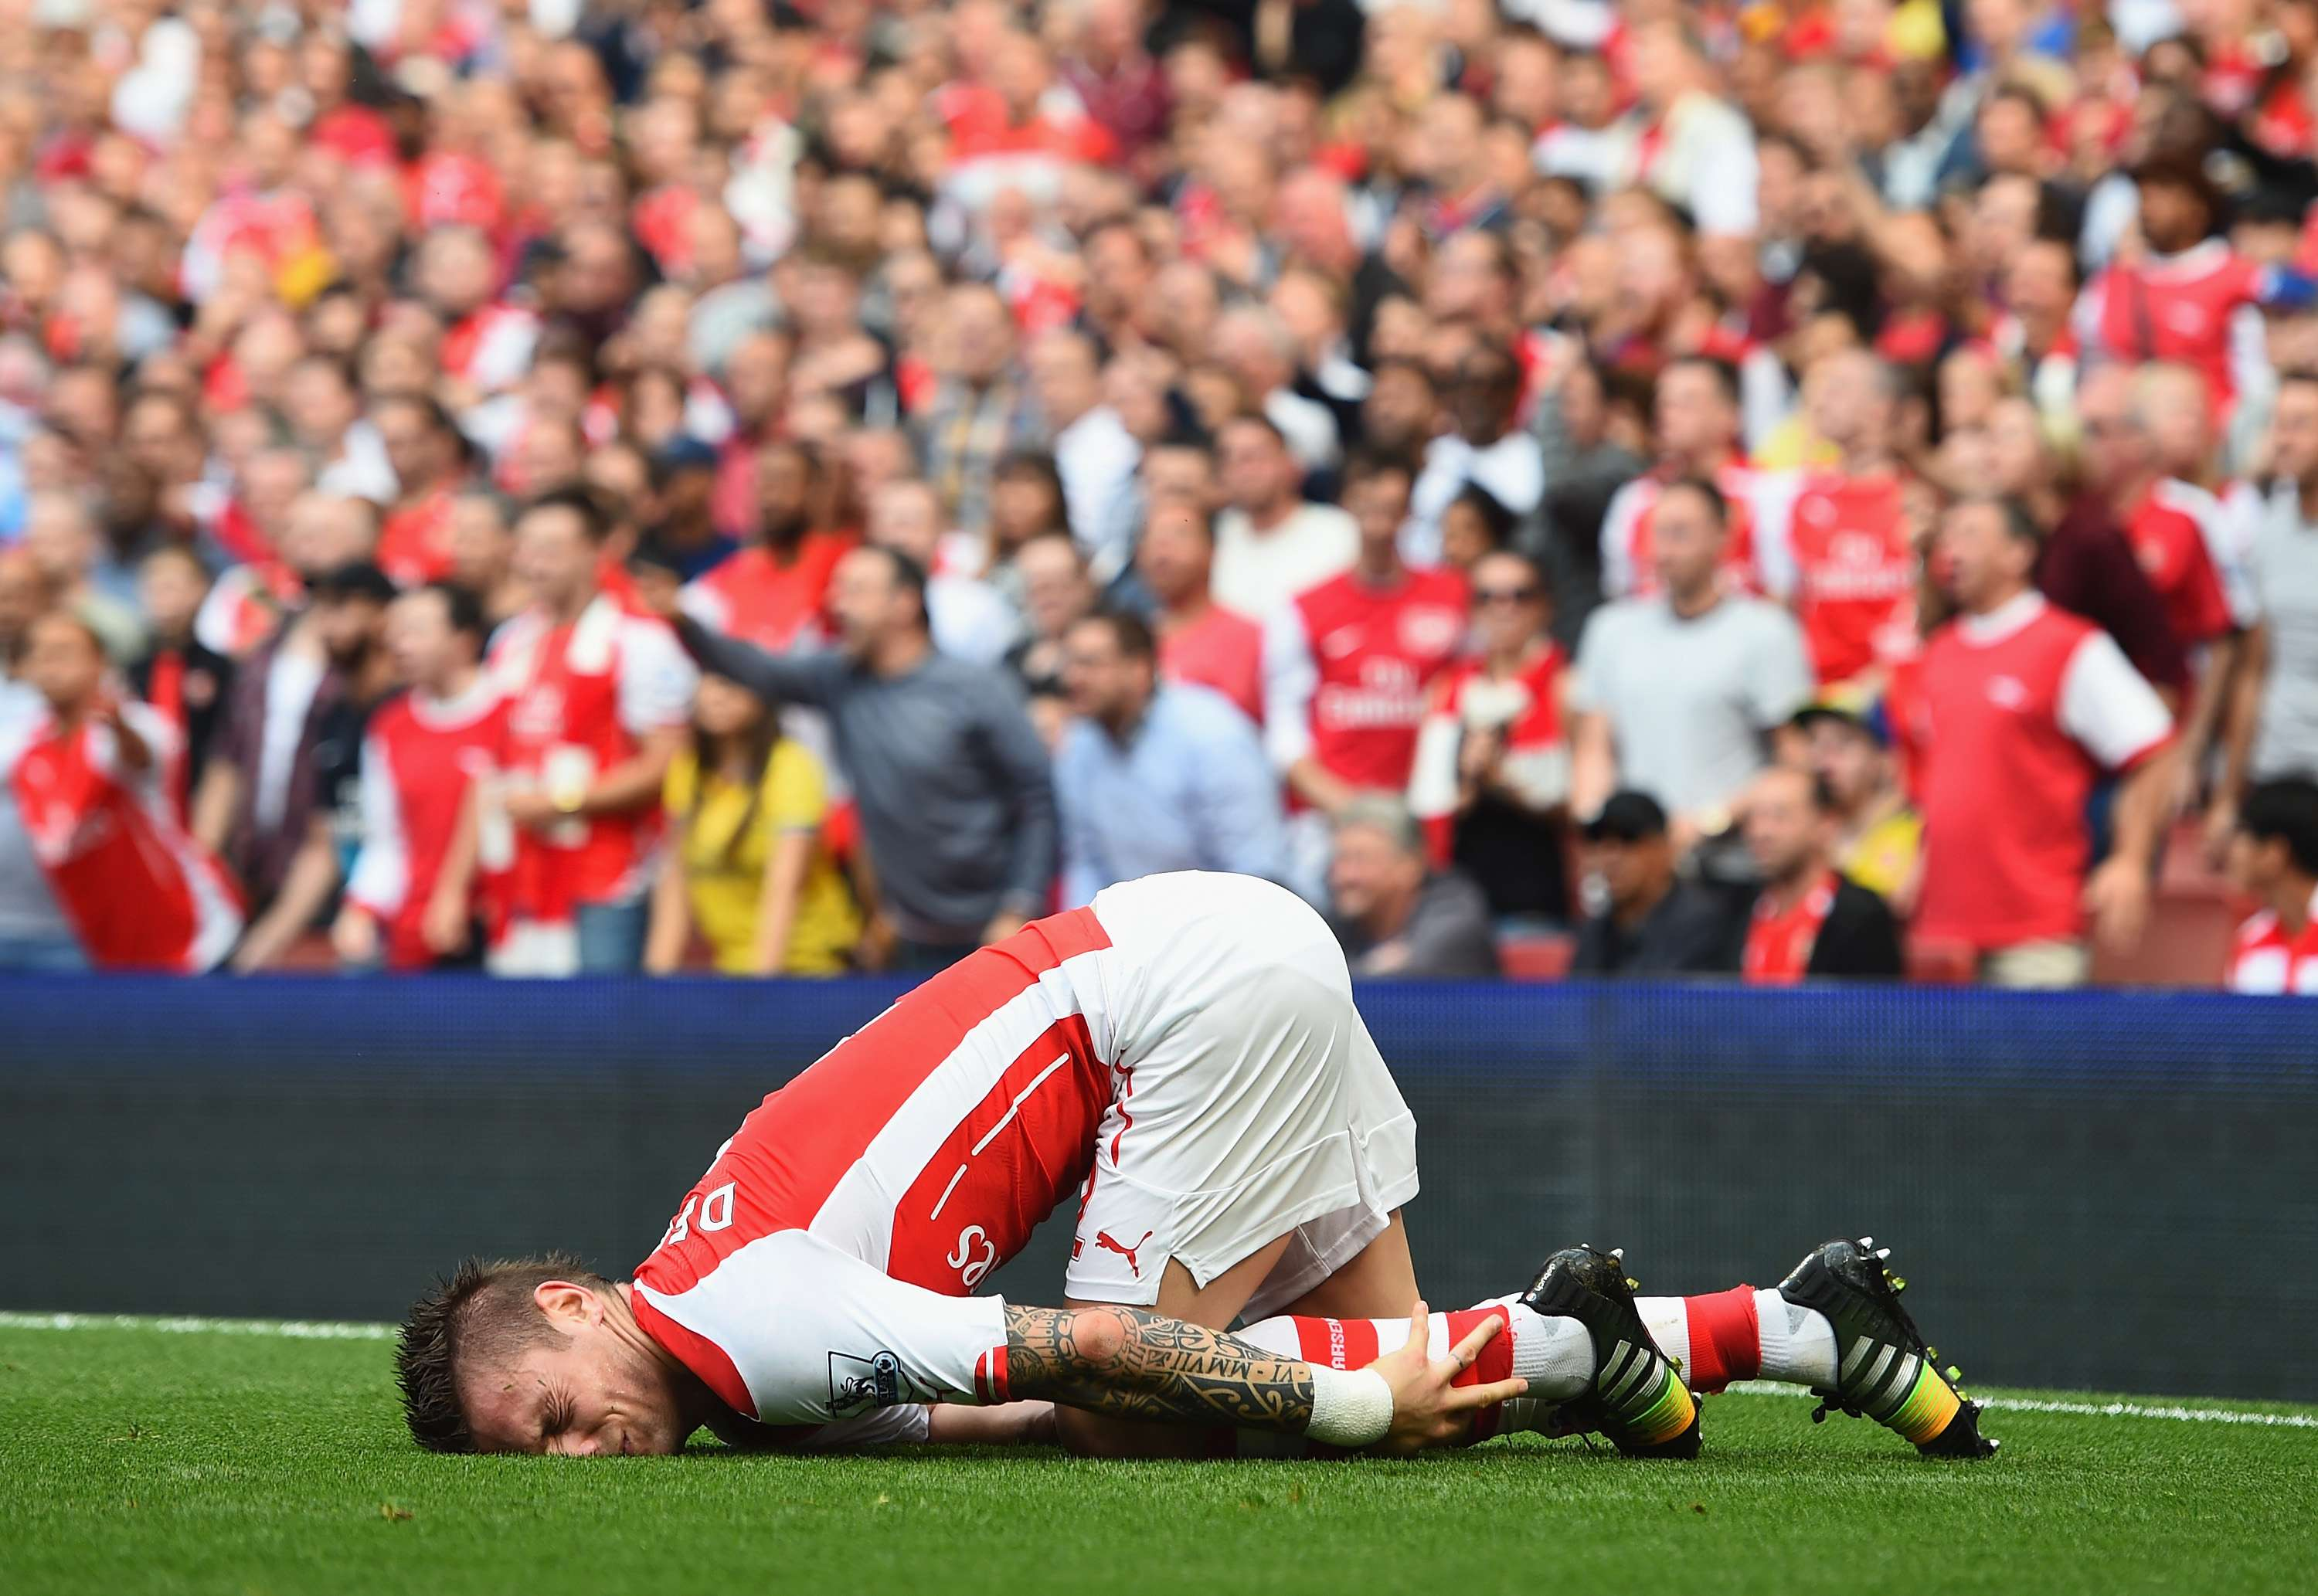 Debuchy se lesionó frente al Manchester City. Foto: Getty Images